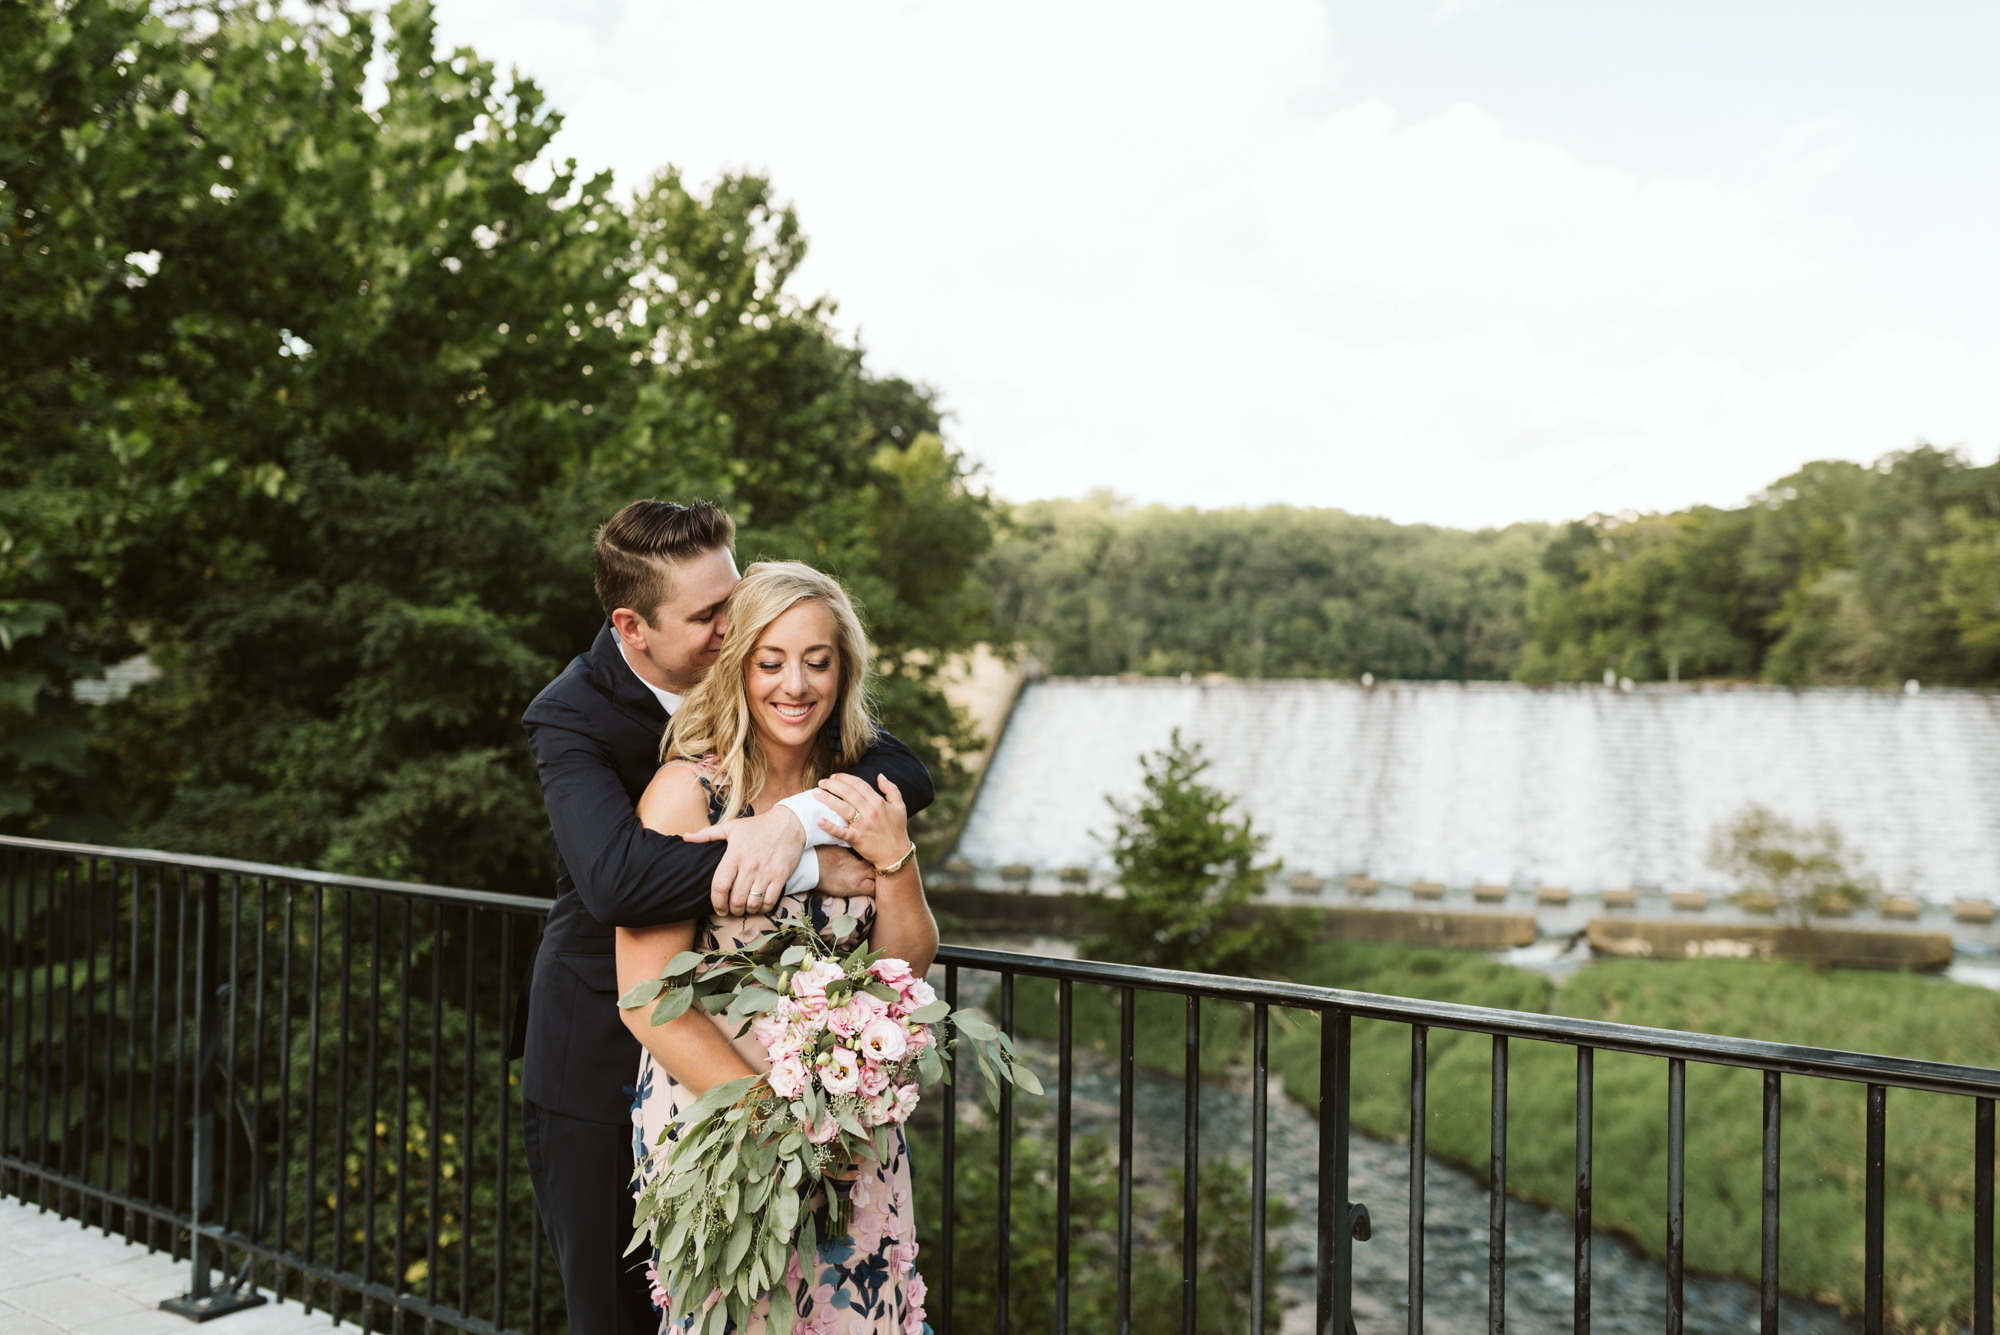 Outdoor Wedding, Casual, Simple, Lake Roland, Baltimore, Maryland Wedding Photographer, Laid Back, DIY Flowers, Bouquet with Eucalyptus and Lisianthus, Bride and Groom Hugging on Bridge